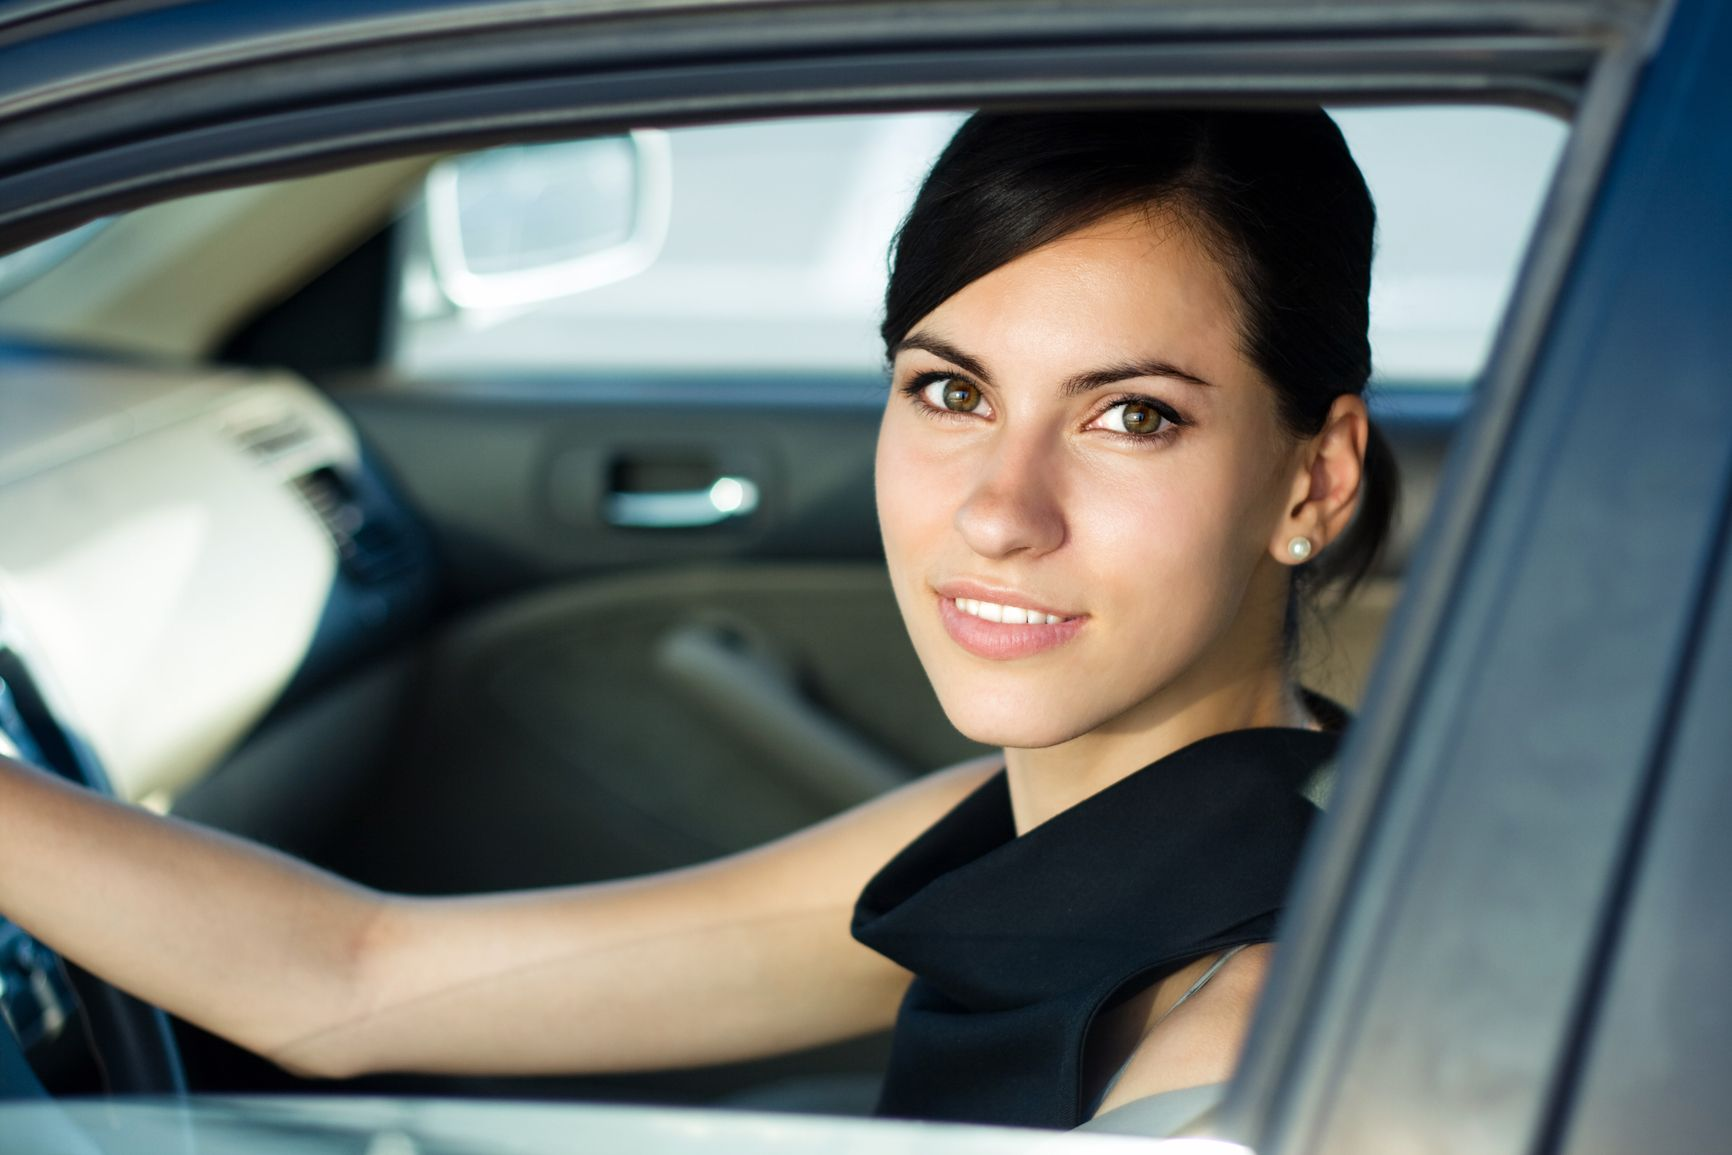 Woman Driving Google Search Best Cheap Car Insurance Best Car